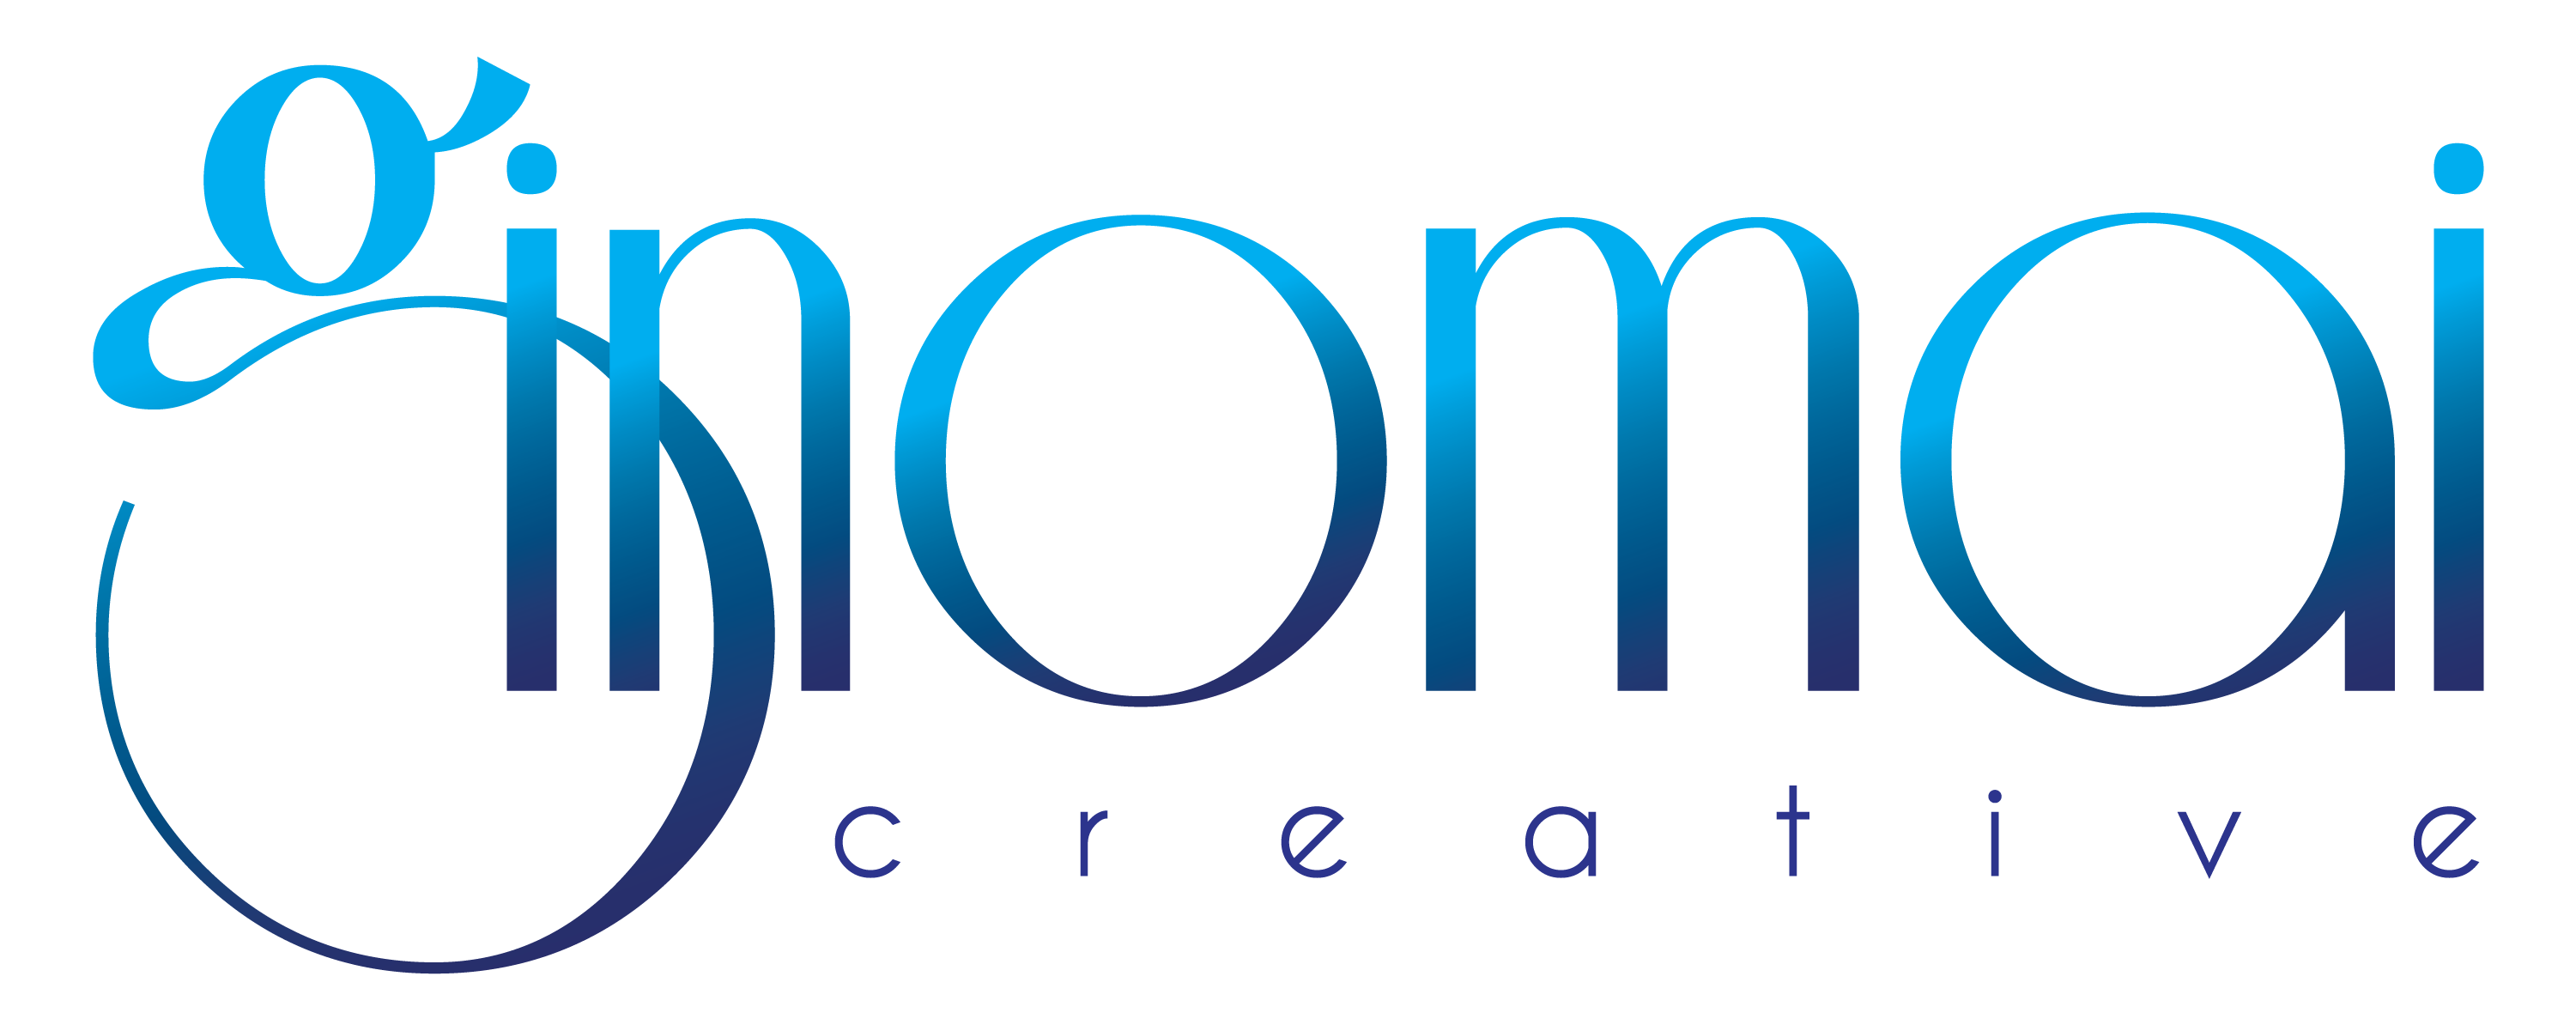 Ginomai Creative (formerly Stacy Morse Consulting)